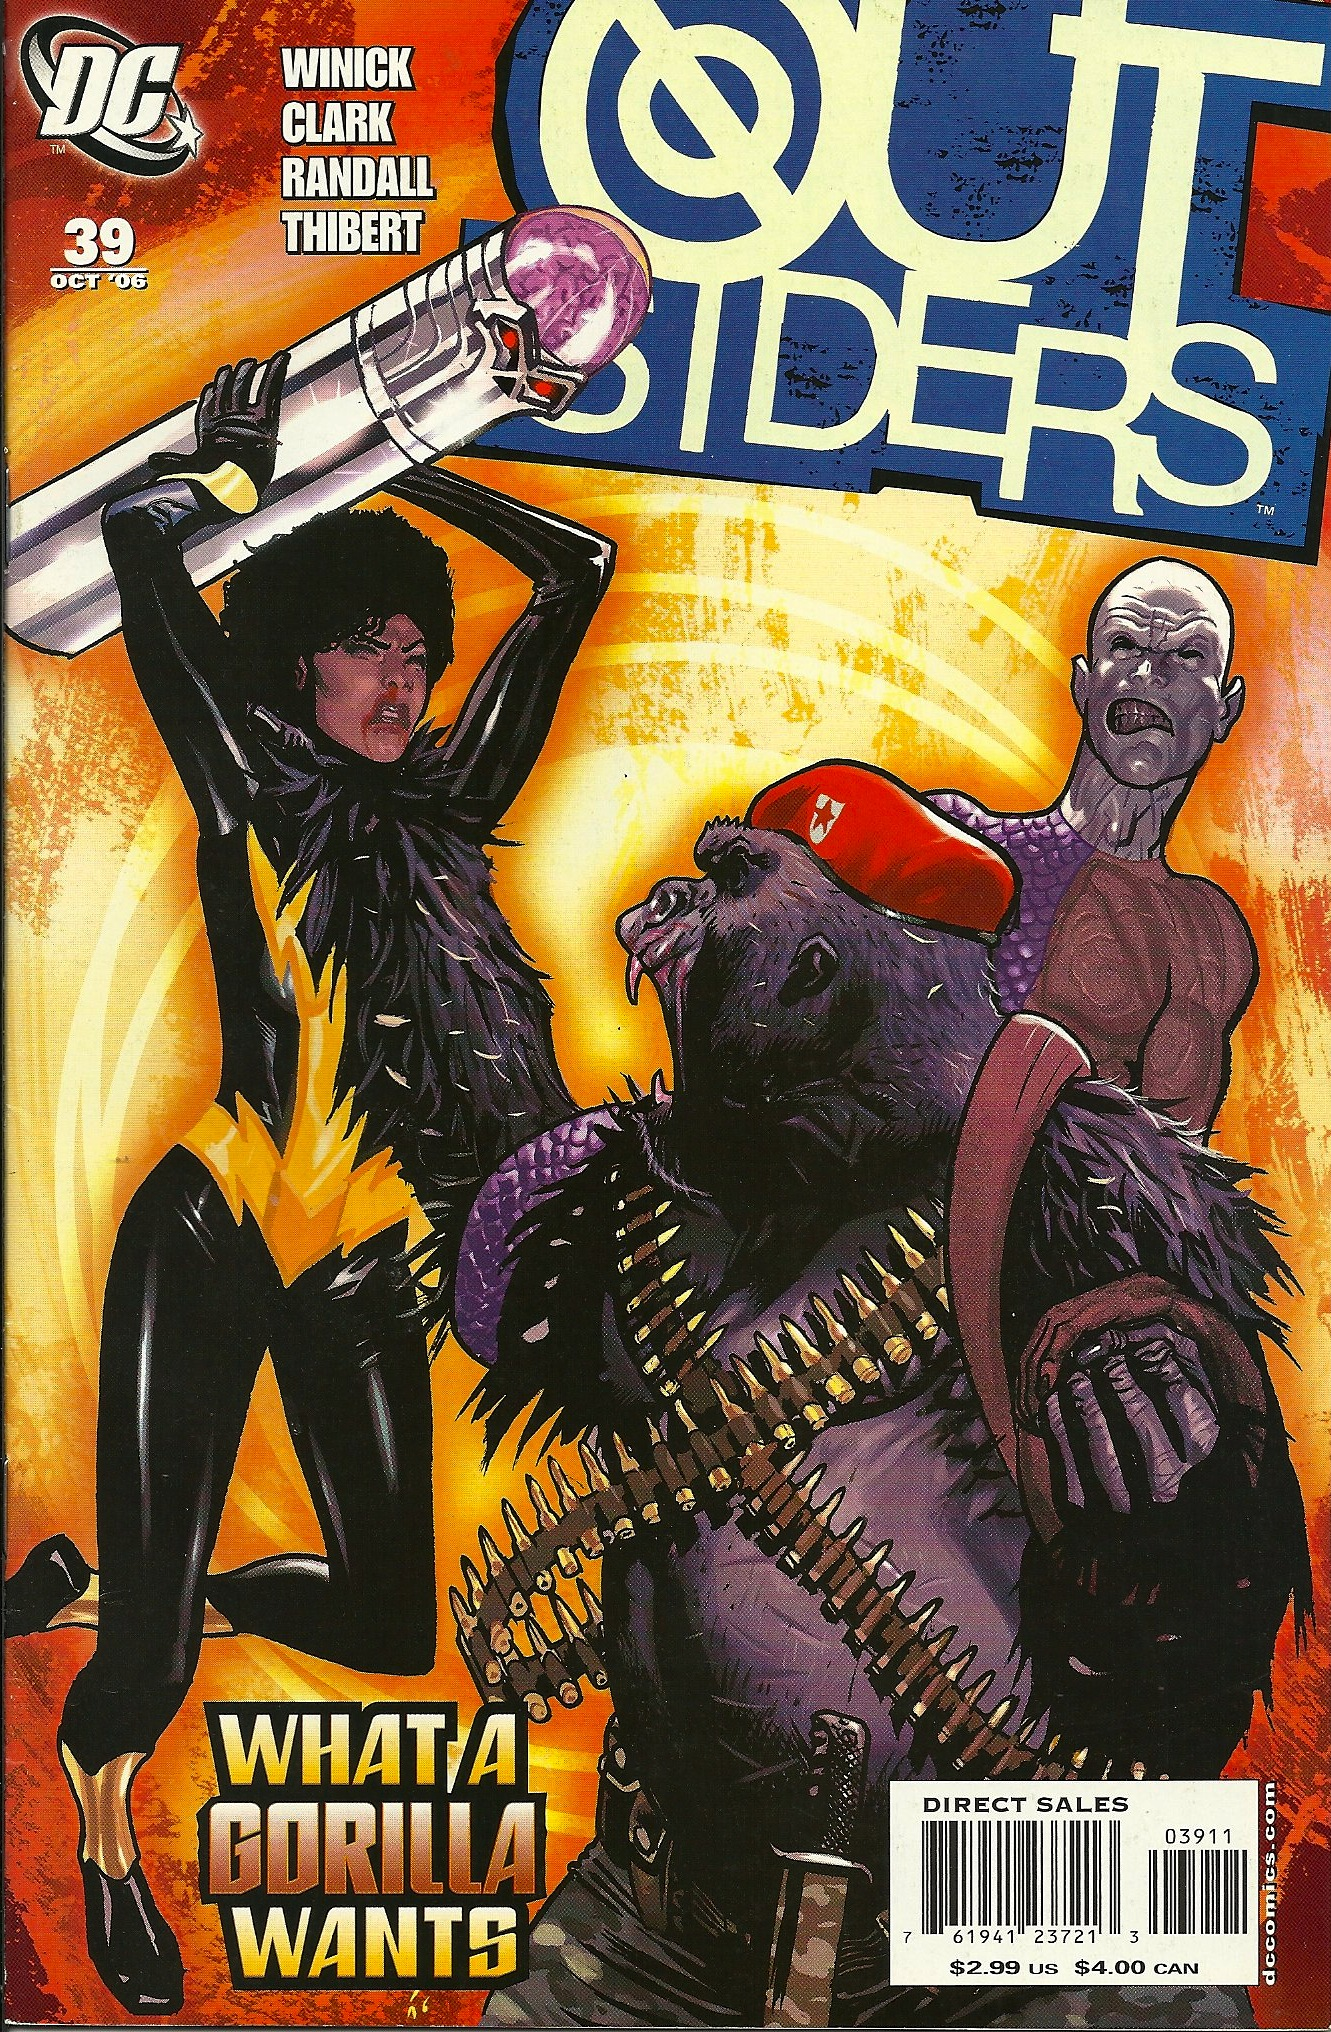 One Of My Favorite Dc Comic Book Covers Outsiders 39